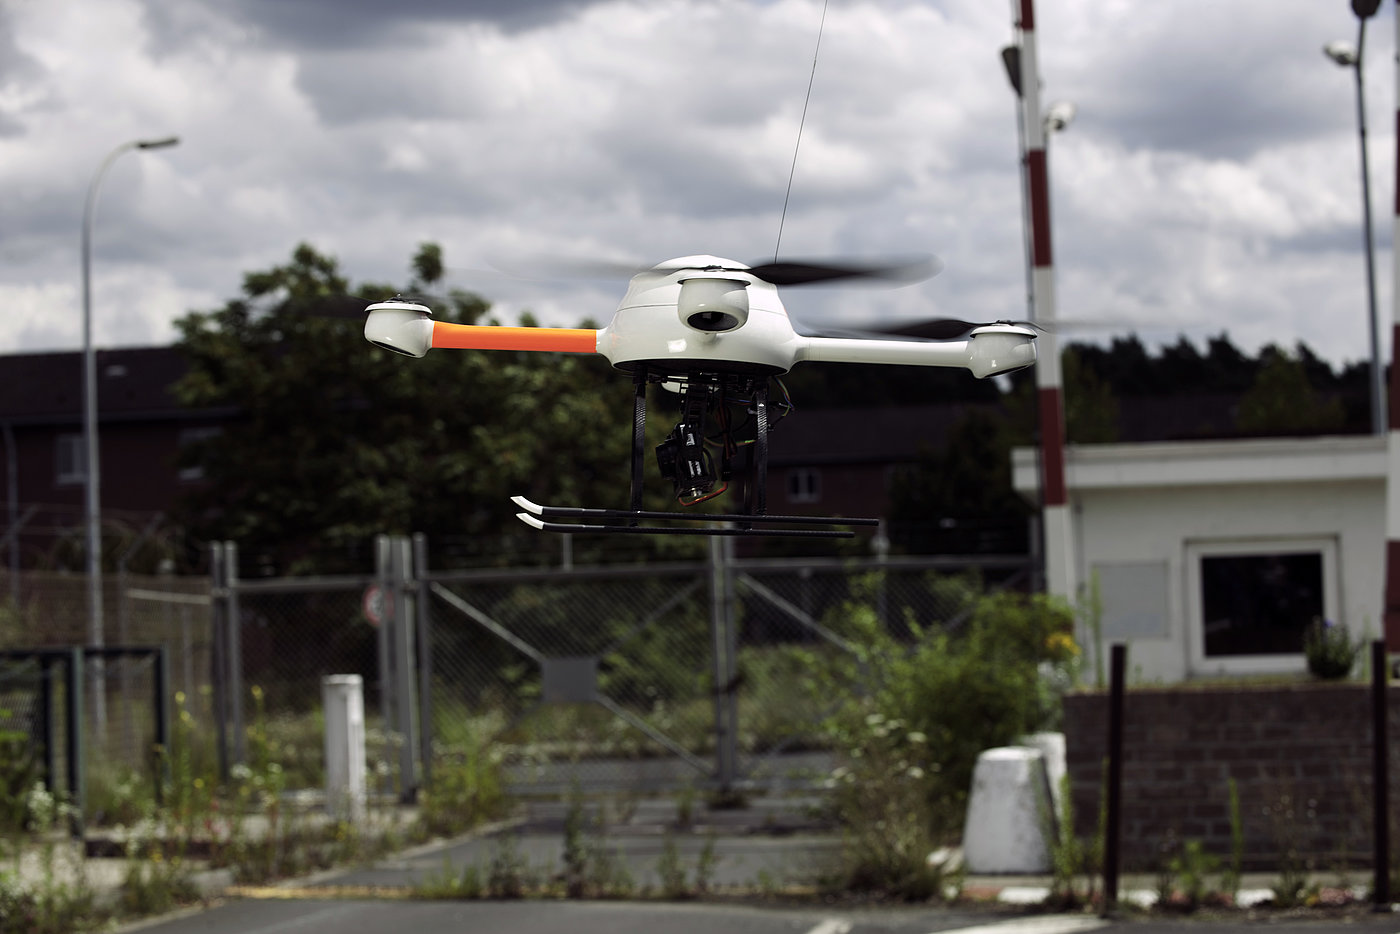 Microdrones md4-200 drone during a surveillance and monitoring flight on a restricted perimeter